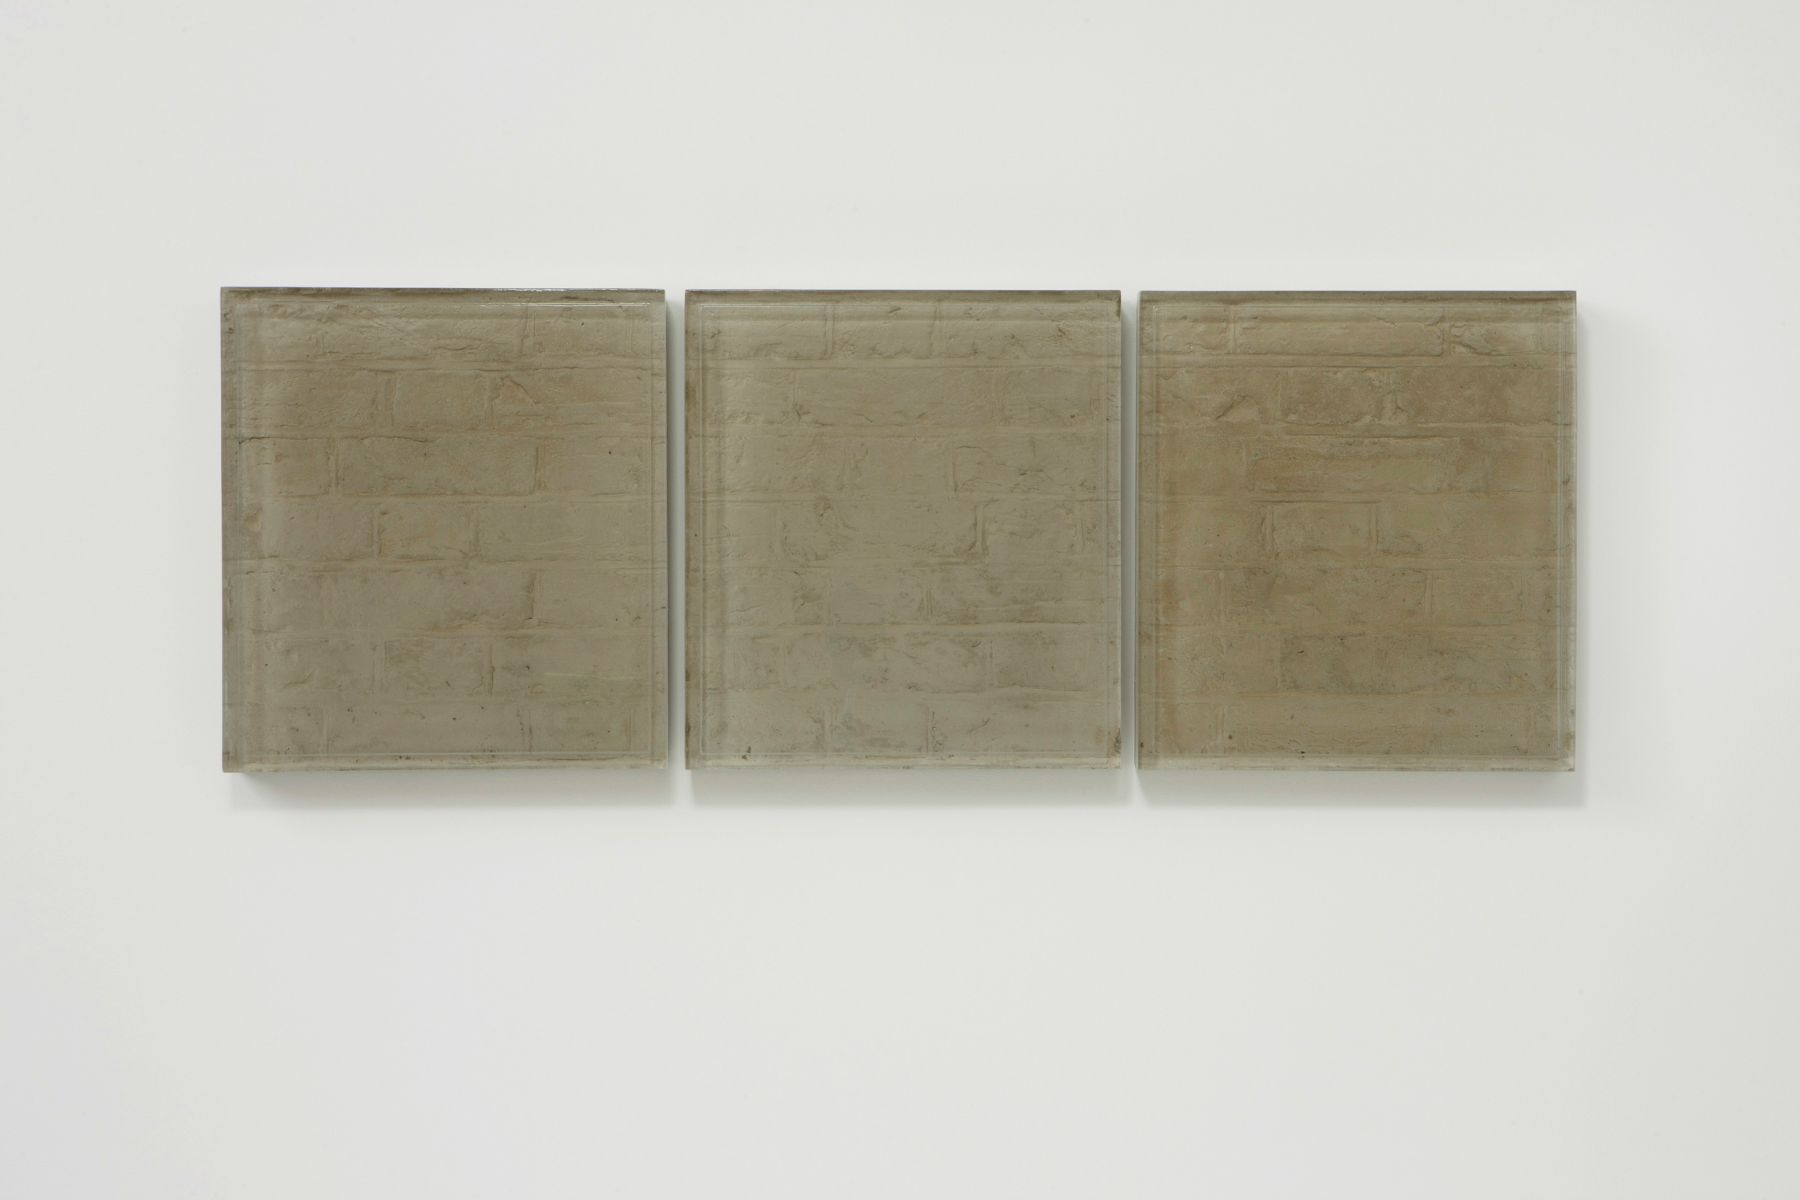 Rachel Whiteread, Untitled, 2015